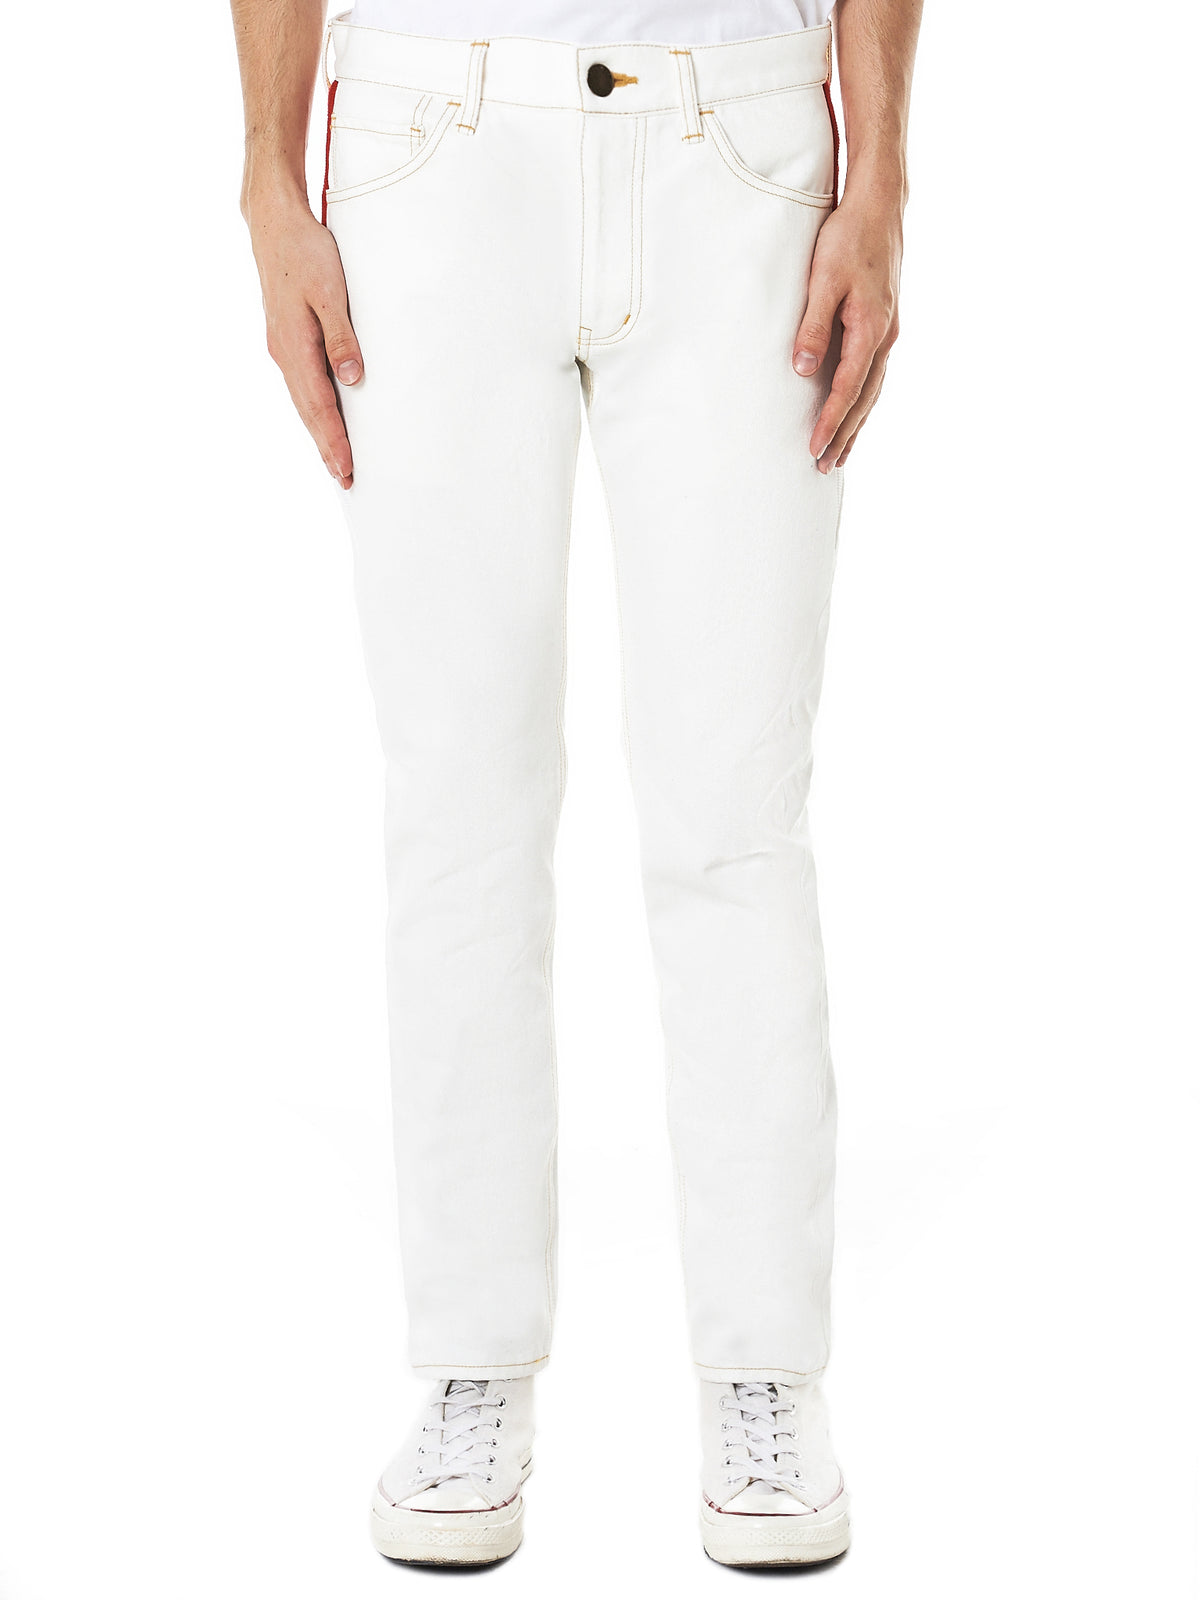 Ribbed Panel Denim Pants (RB-PT-U01-WHITE)